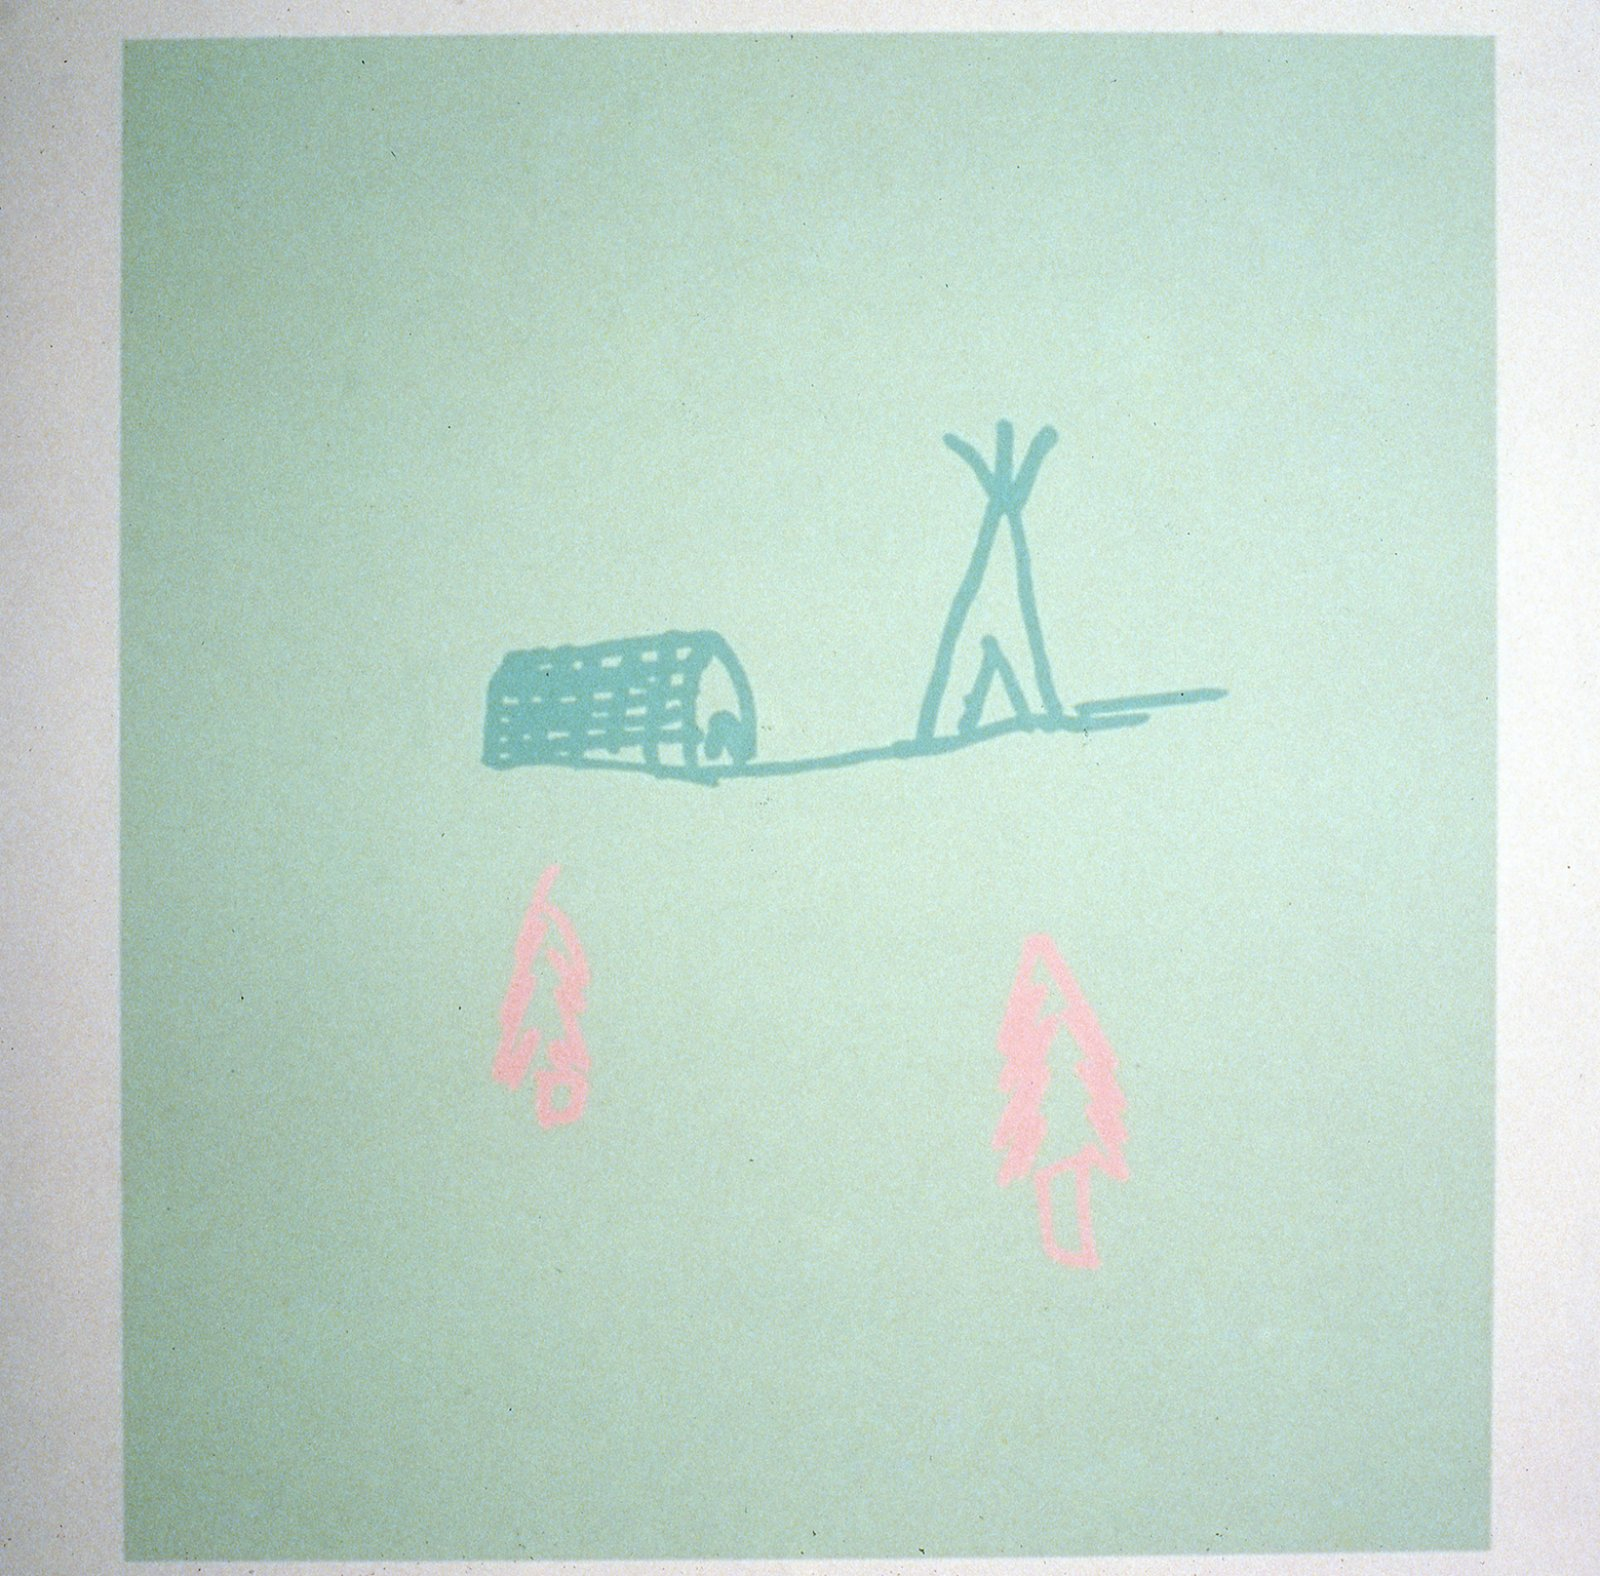 Brian Jungen,Anonymous Drawings (Village), 1997,latex paint on wall,98 x 197 in. (250 x 500 cm)